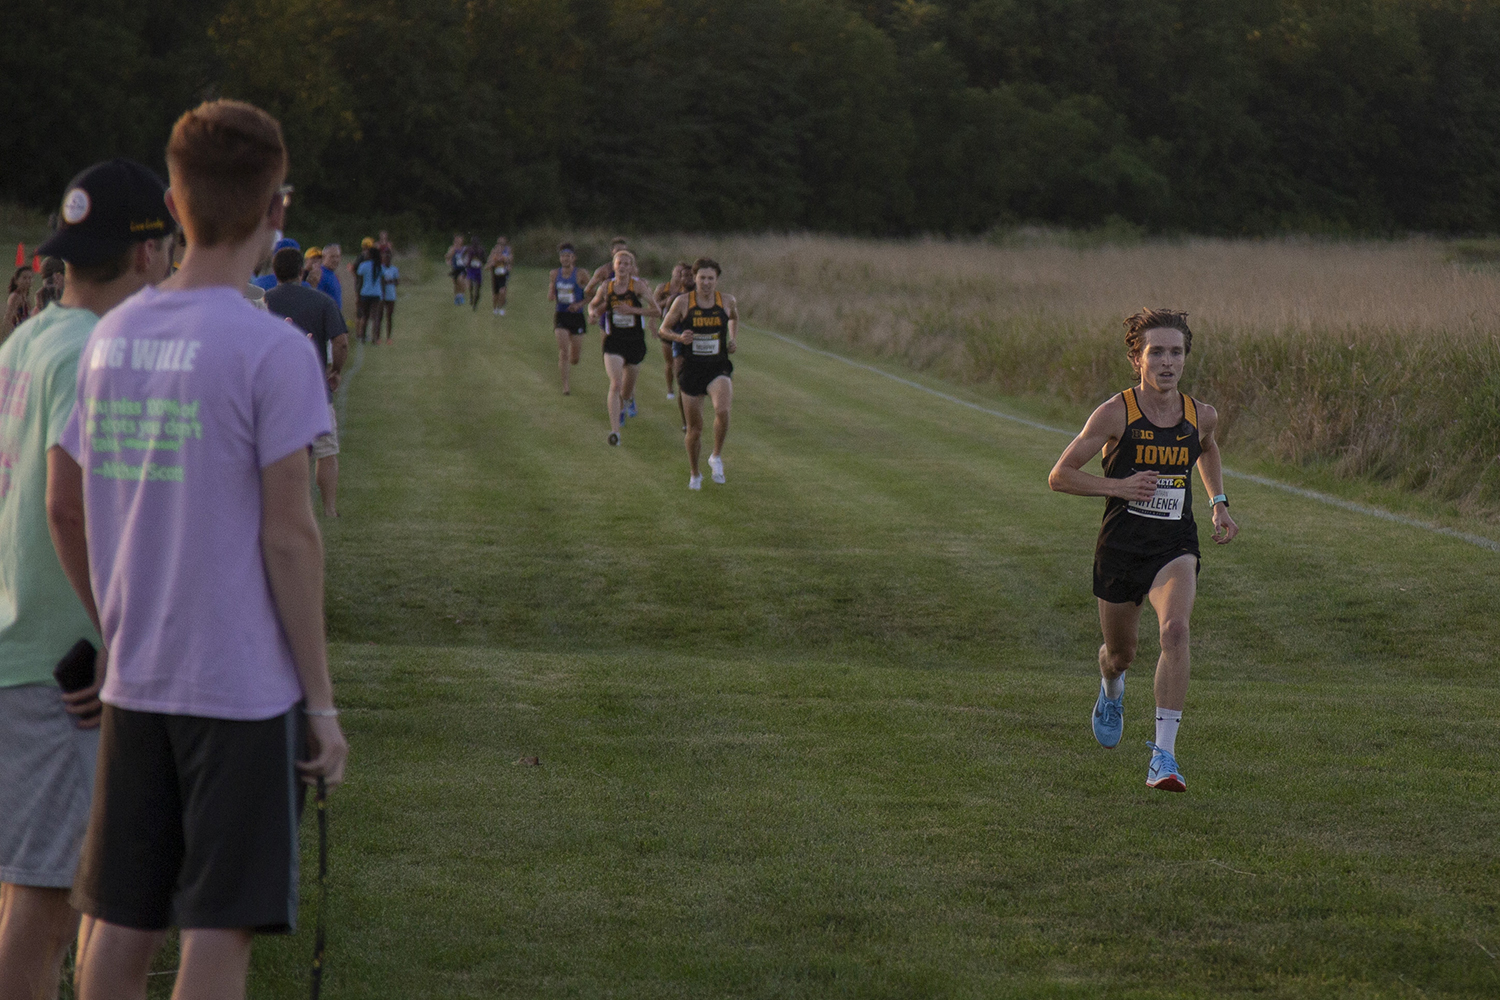 Iowa's Nathan Mylenek picks up speed as he approaches the finish line of the men's 6k during the Hawkeye Invitational at Ashton Cross Country Course on Friday, September 6, 2019. Mylenek finished second with a time of 18:16.0. The Hawkeyes defeated six other teams to finish first overall for both men's and women's races.